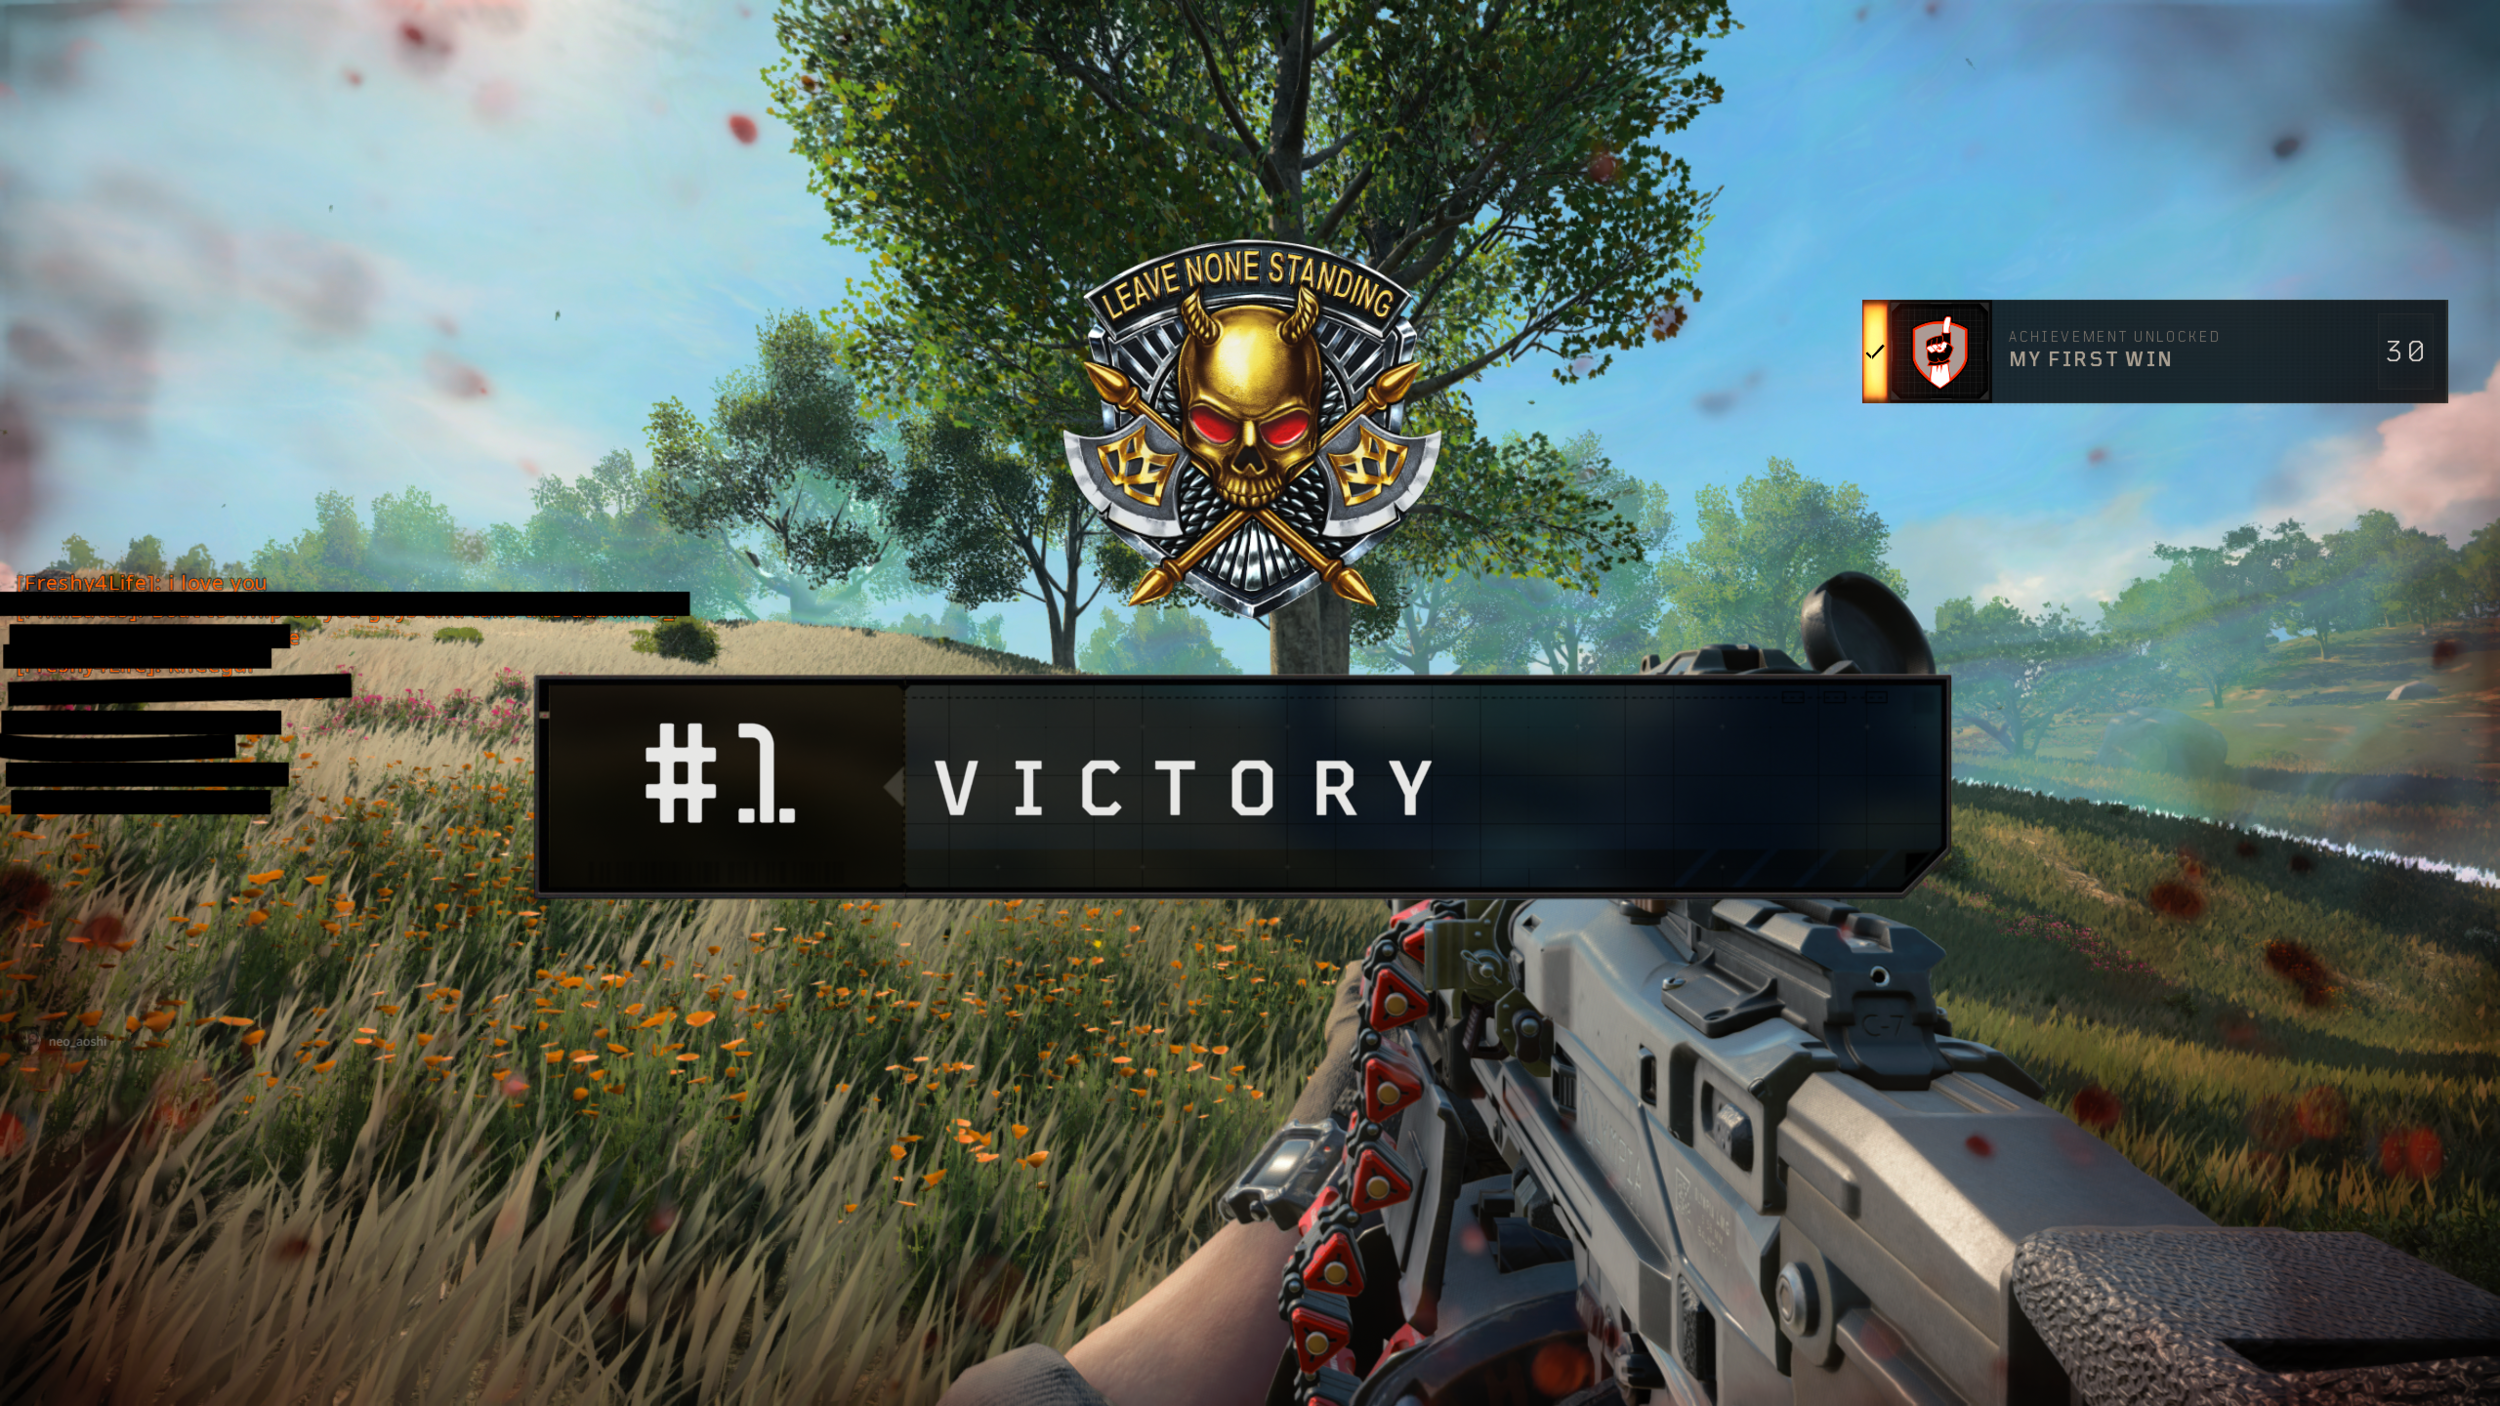 My first #1 Victory!